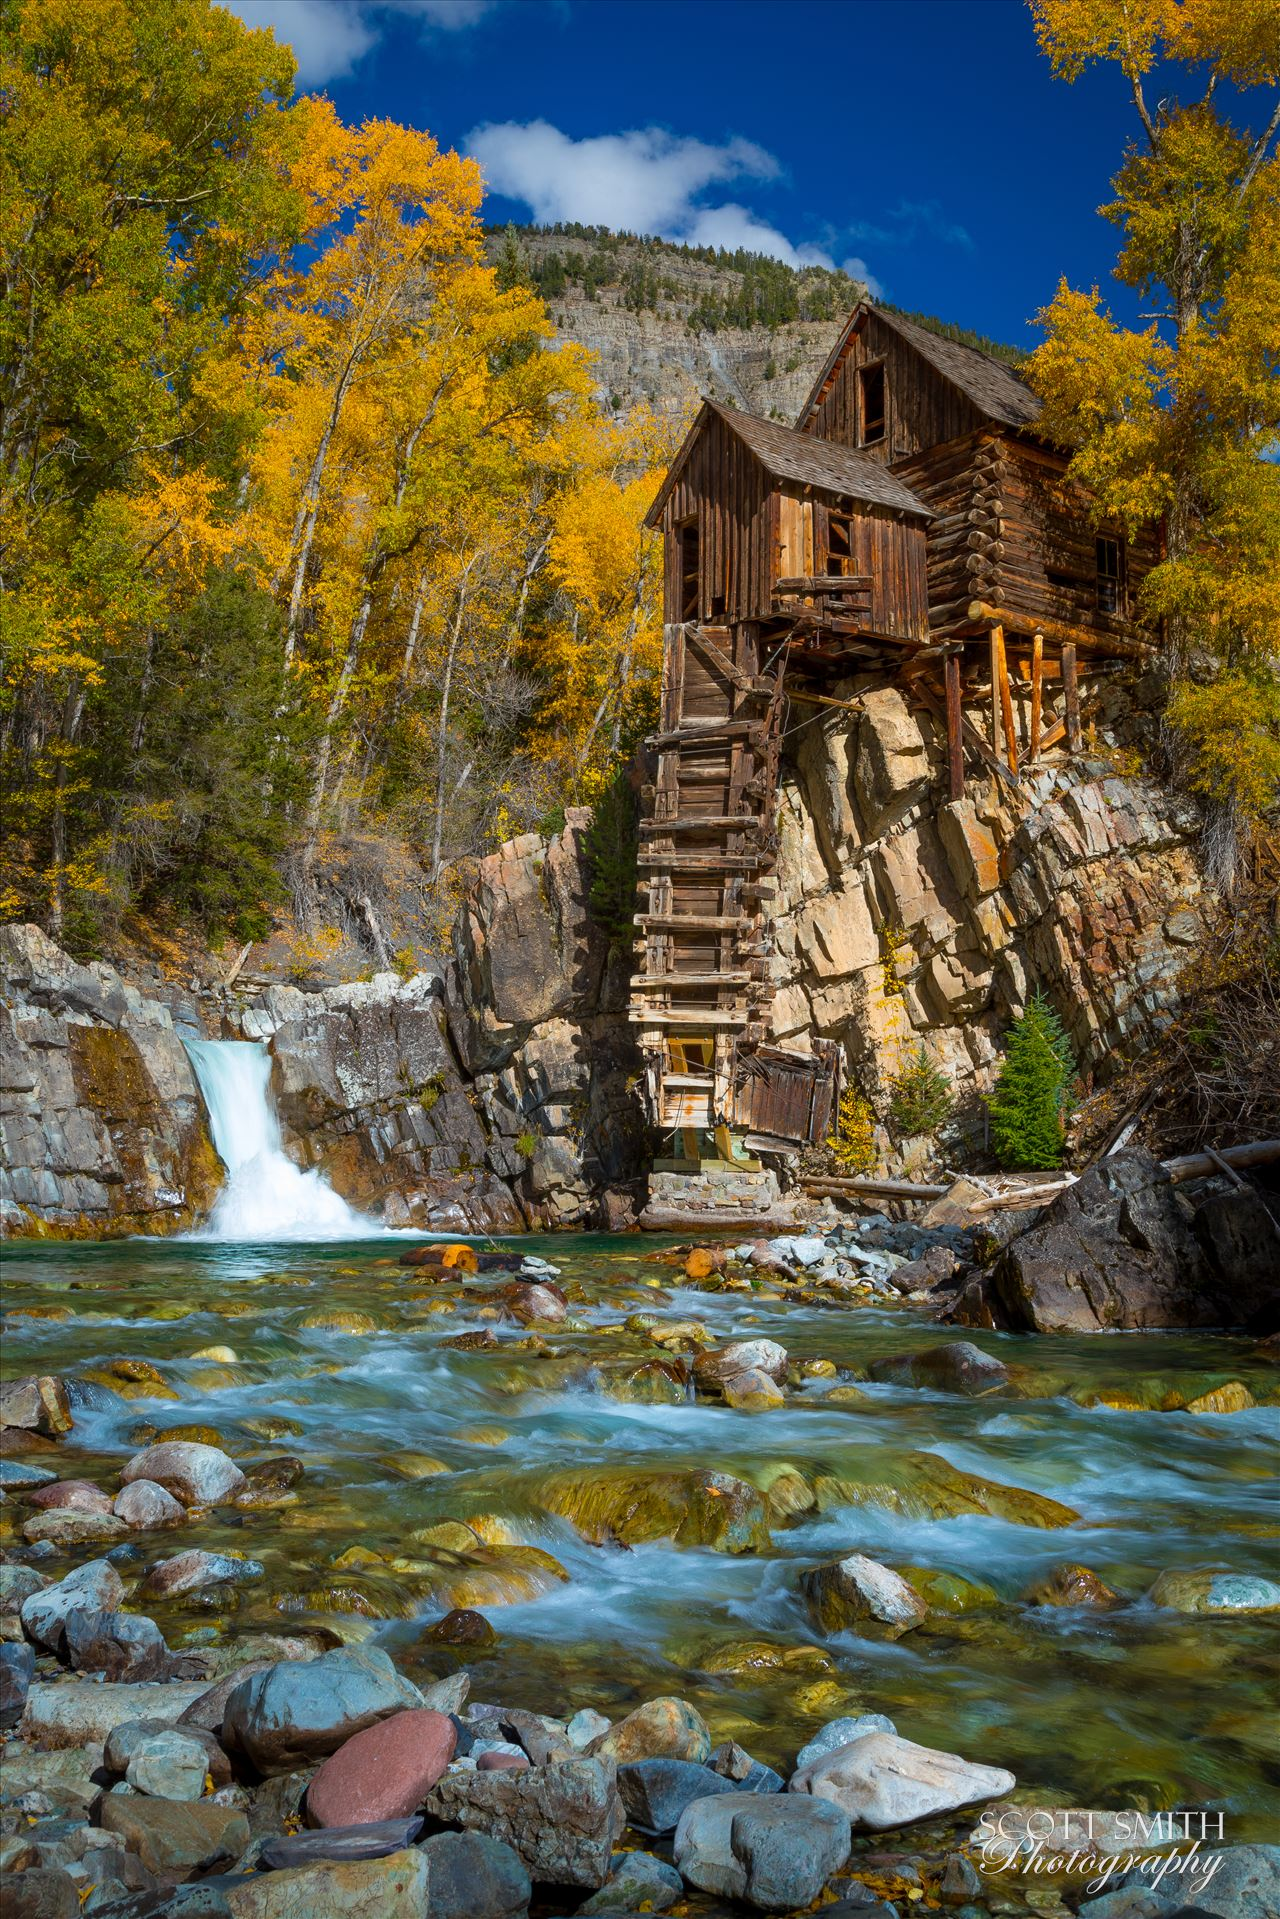 Crystal Mill, Colorado 08 The Crystal Mill, or the Old Mill is an 1892 wooden powerhouse located on an outcrop above the Crystal River in Crystal, Colorado by Scott Smith Photos